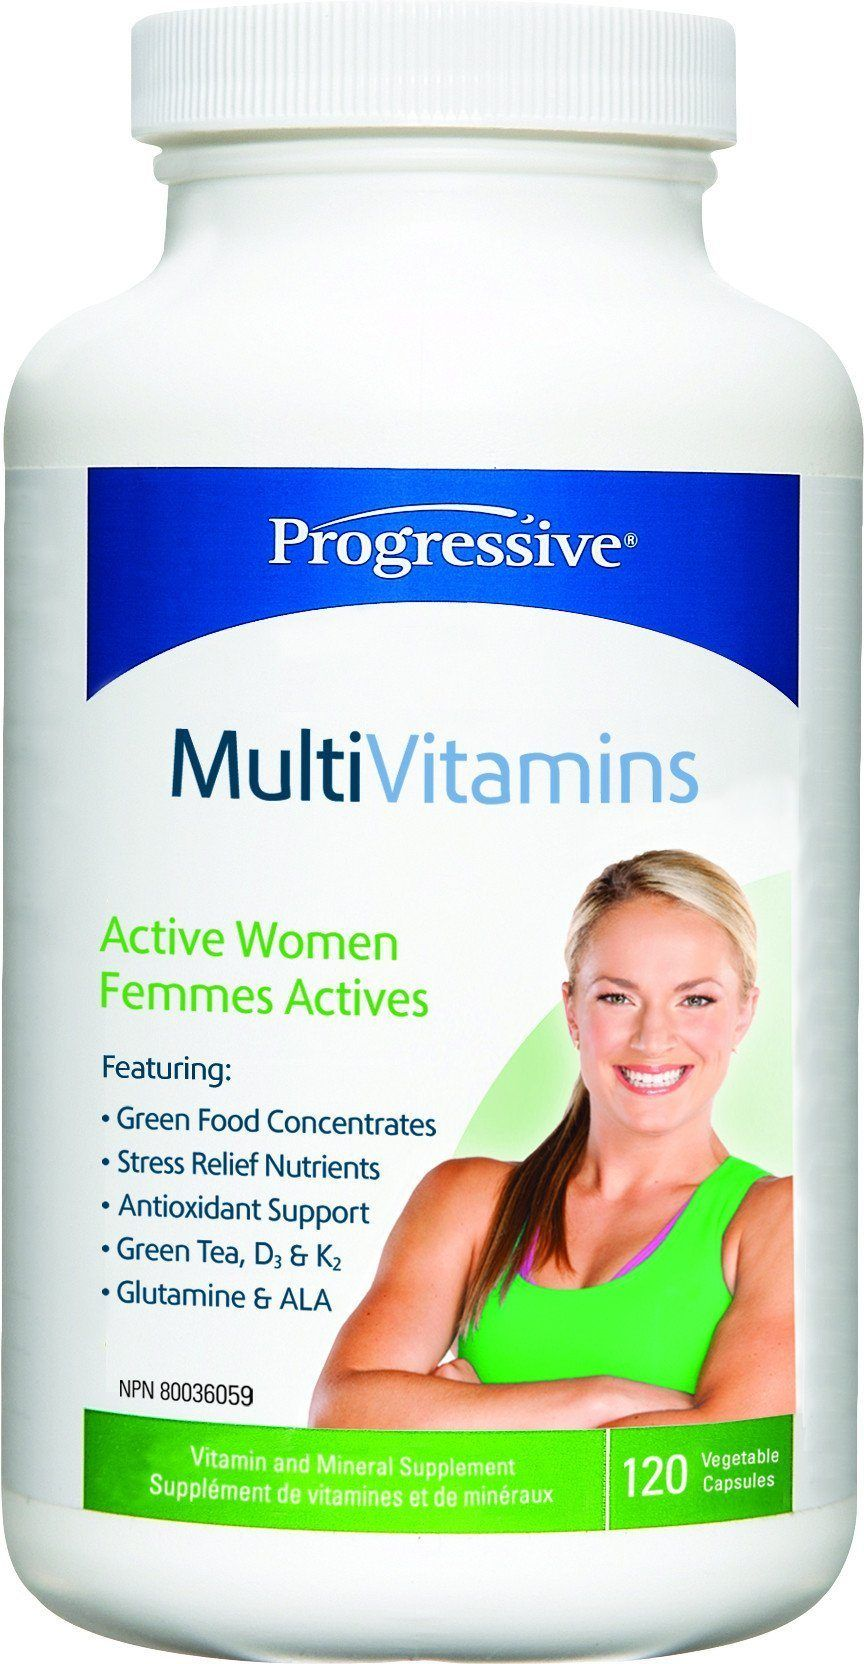 Supplements & Vitamins - Progressive - MultiVitamins For Active Women, 120 Caps